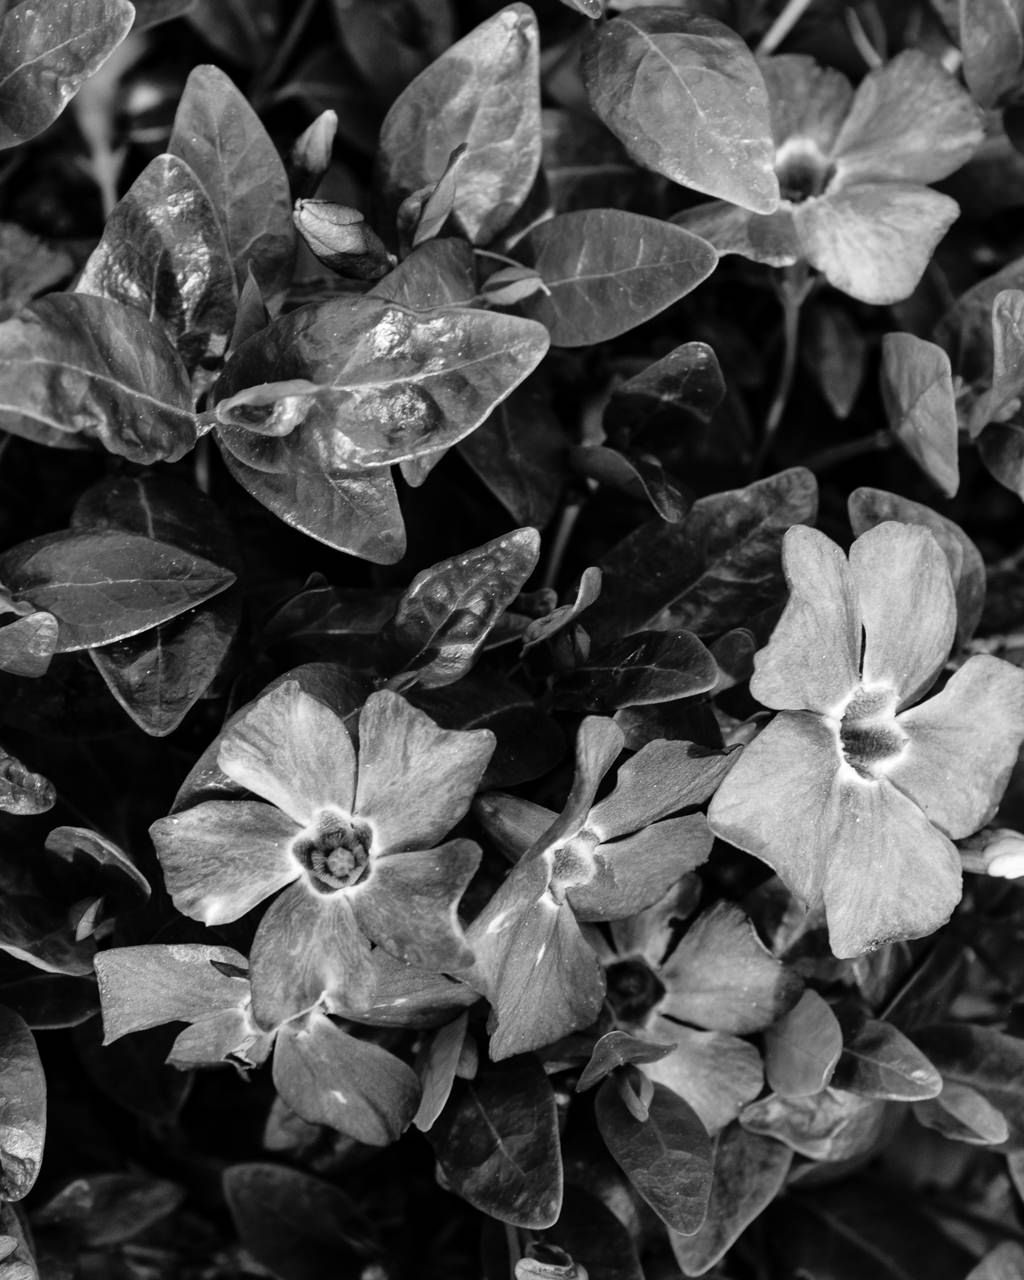 Day 127- 365 Day B&W Photo Challenge - Spring Flowers are starting to bloom - Fuji X100F, Acros Ye Film Simulation